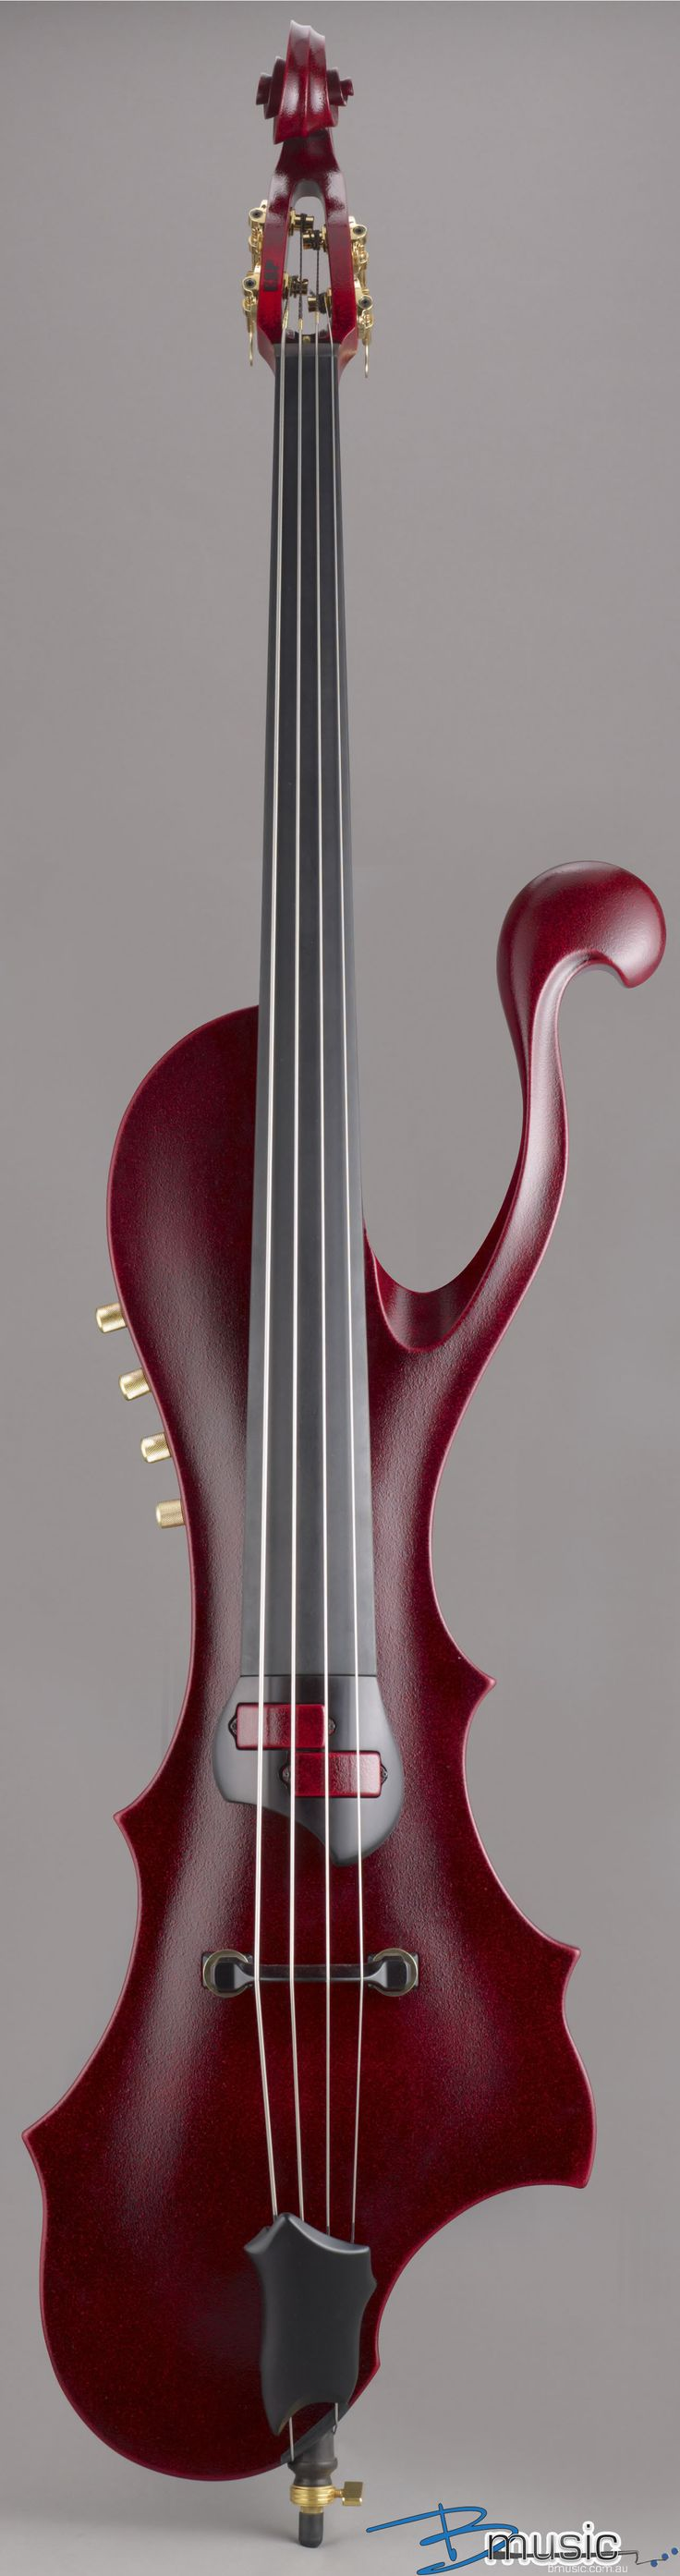 best 25 bass guitars ideas on pinterest bass bass guitar